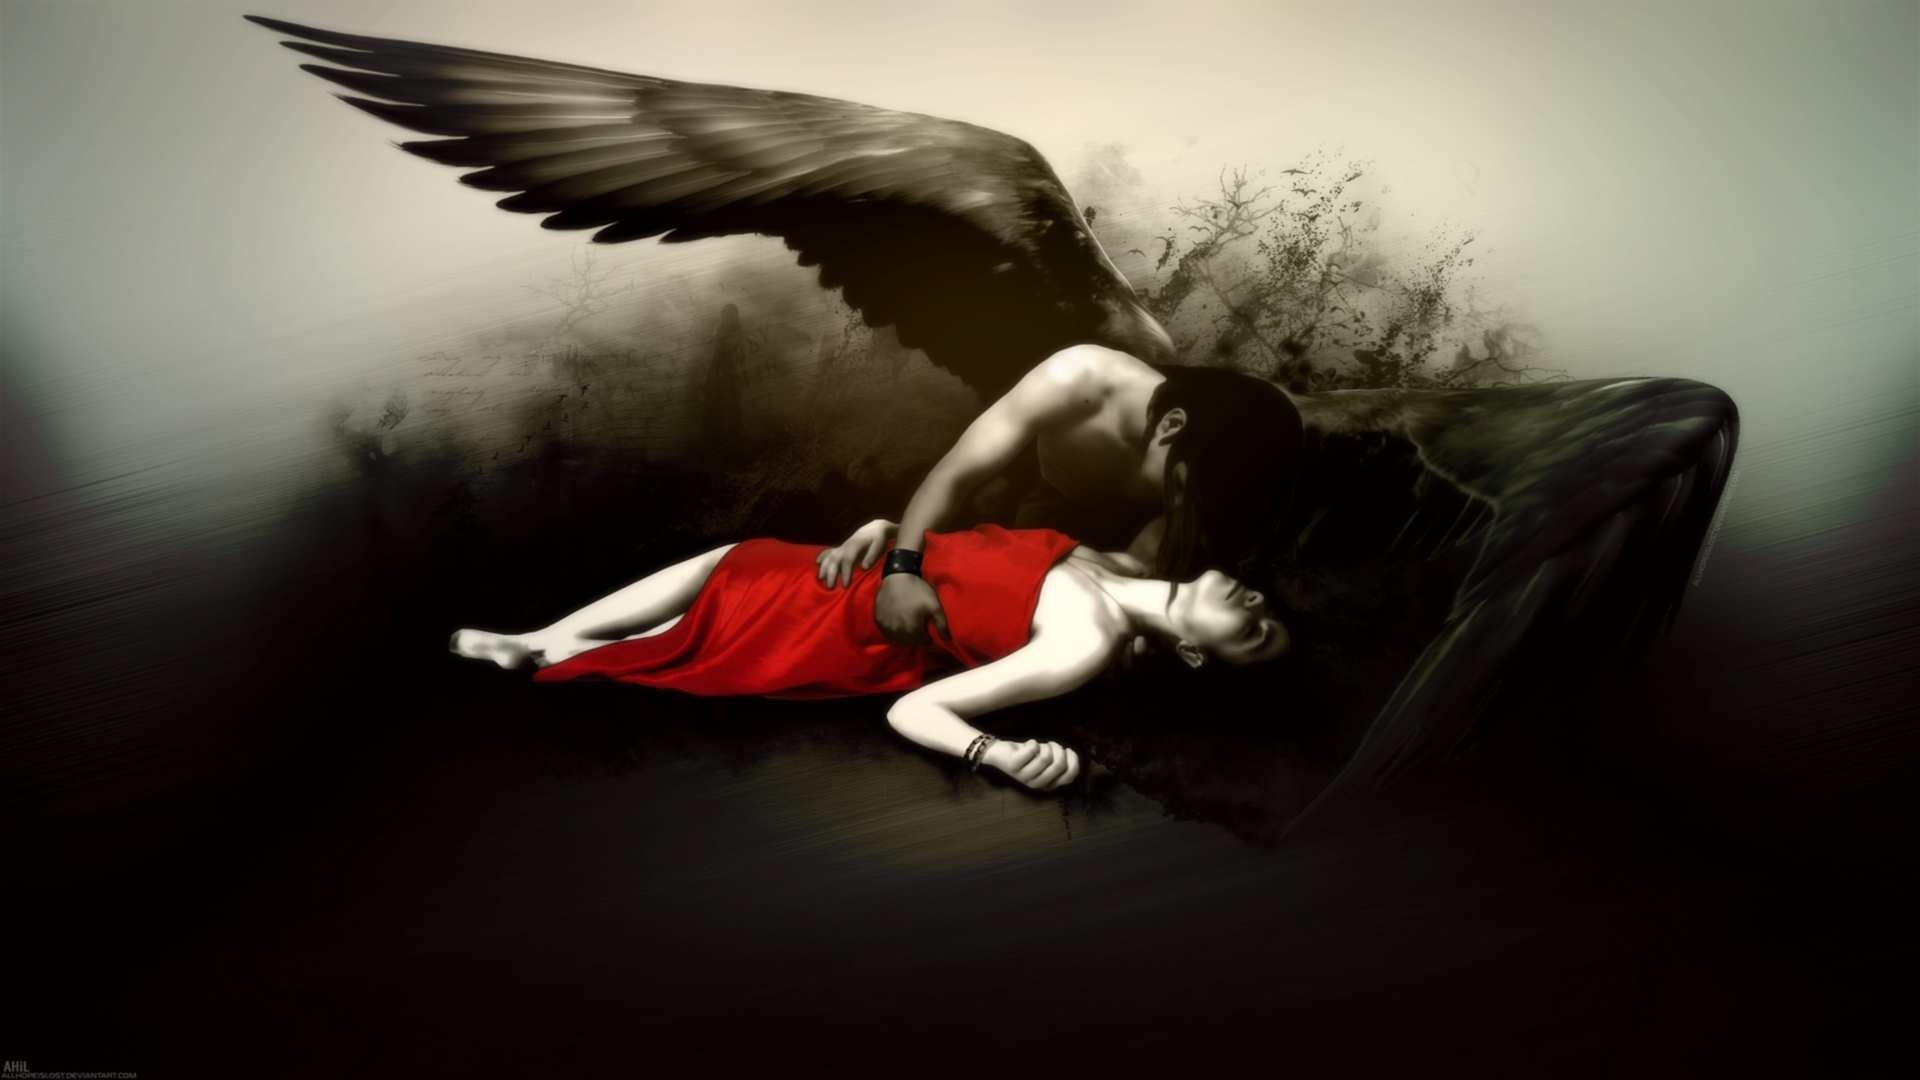 Grief of an Angel HD Wallpaper Background Image 1920x1080 ID 1920x1080